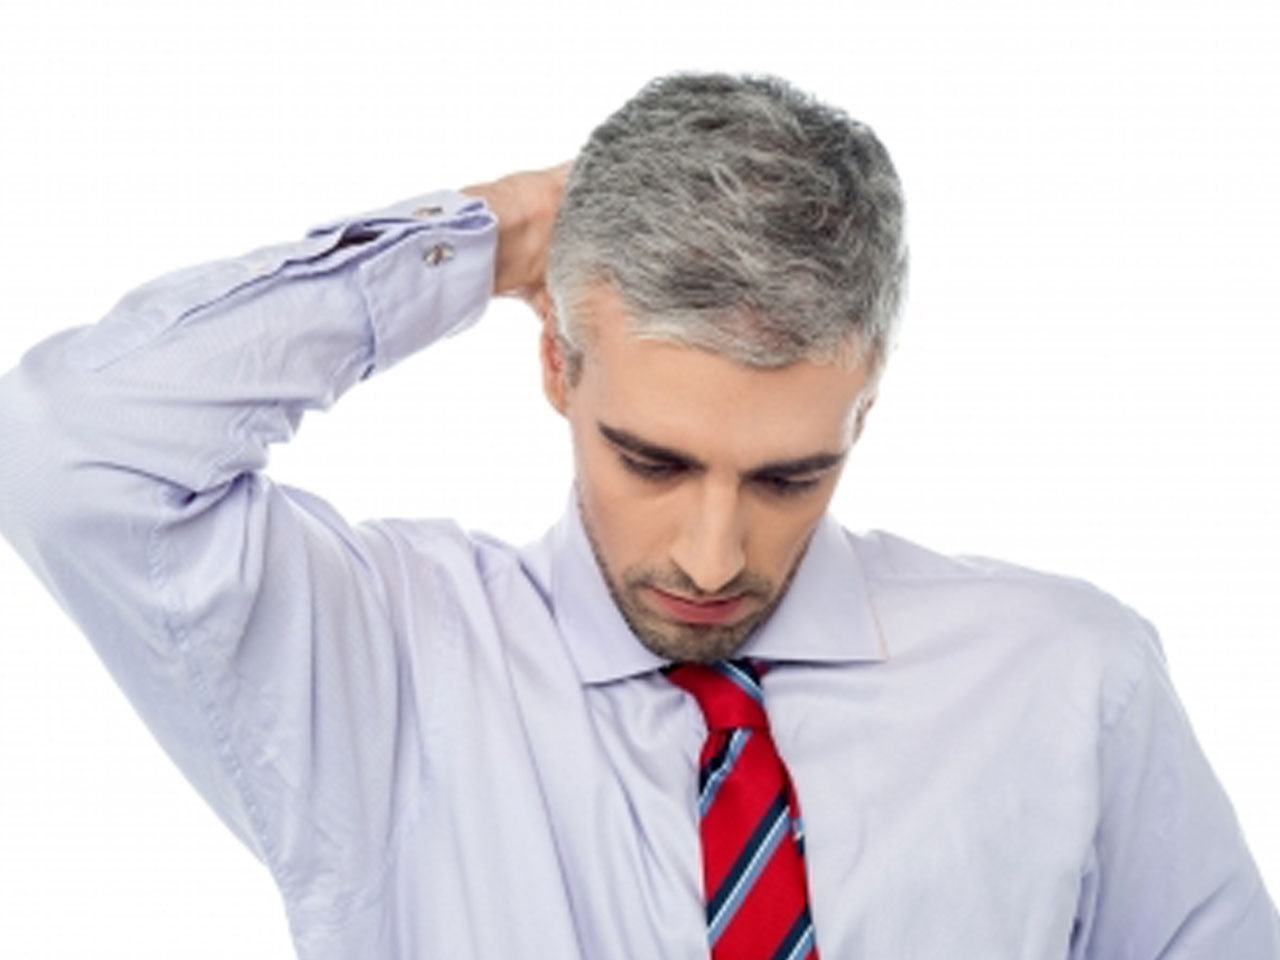 Guys over 40, there are 3 main types of stress that can really screw you up